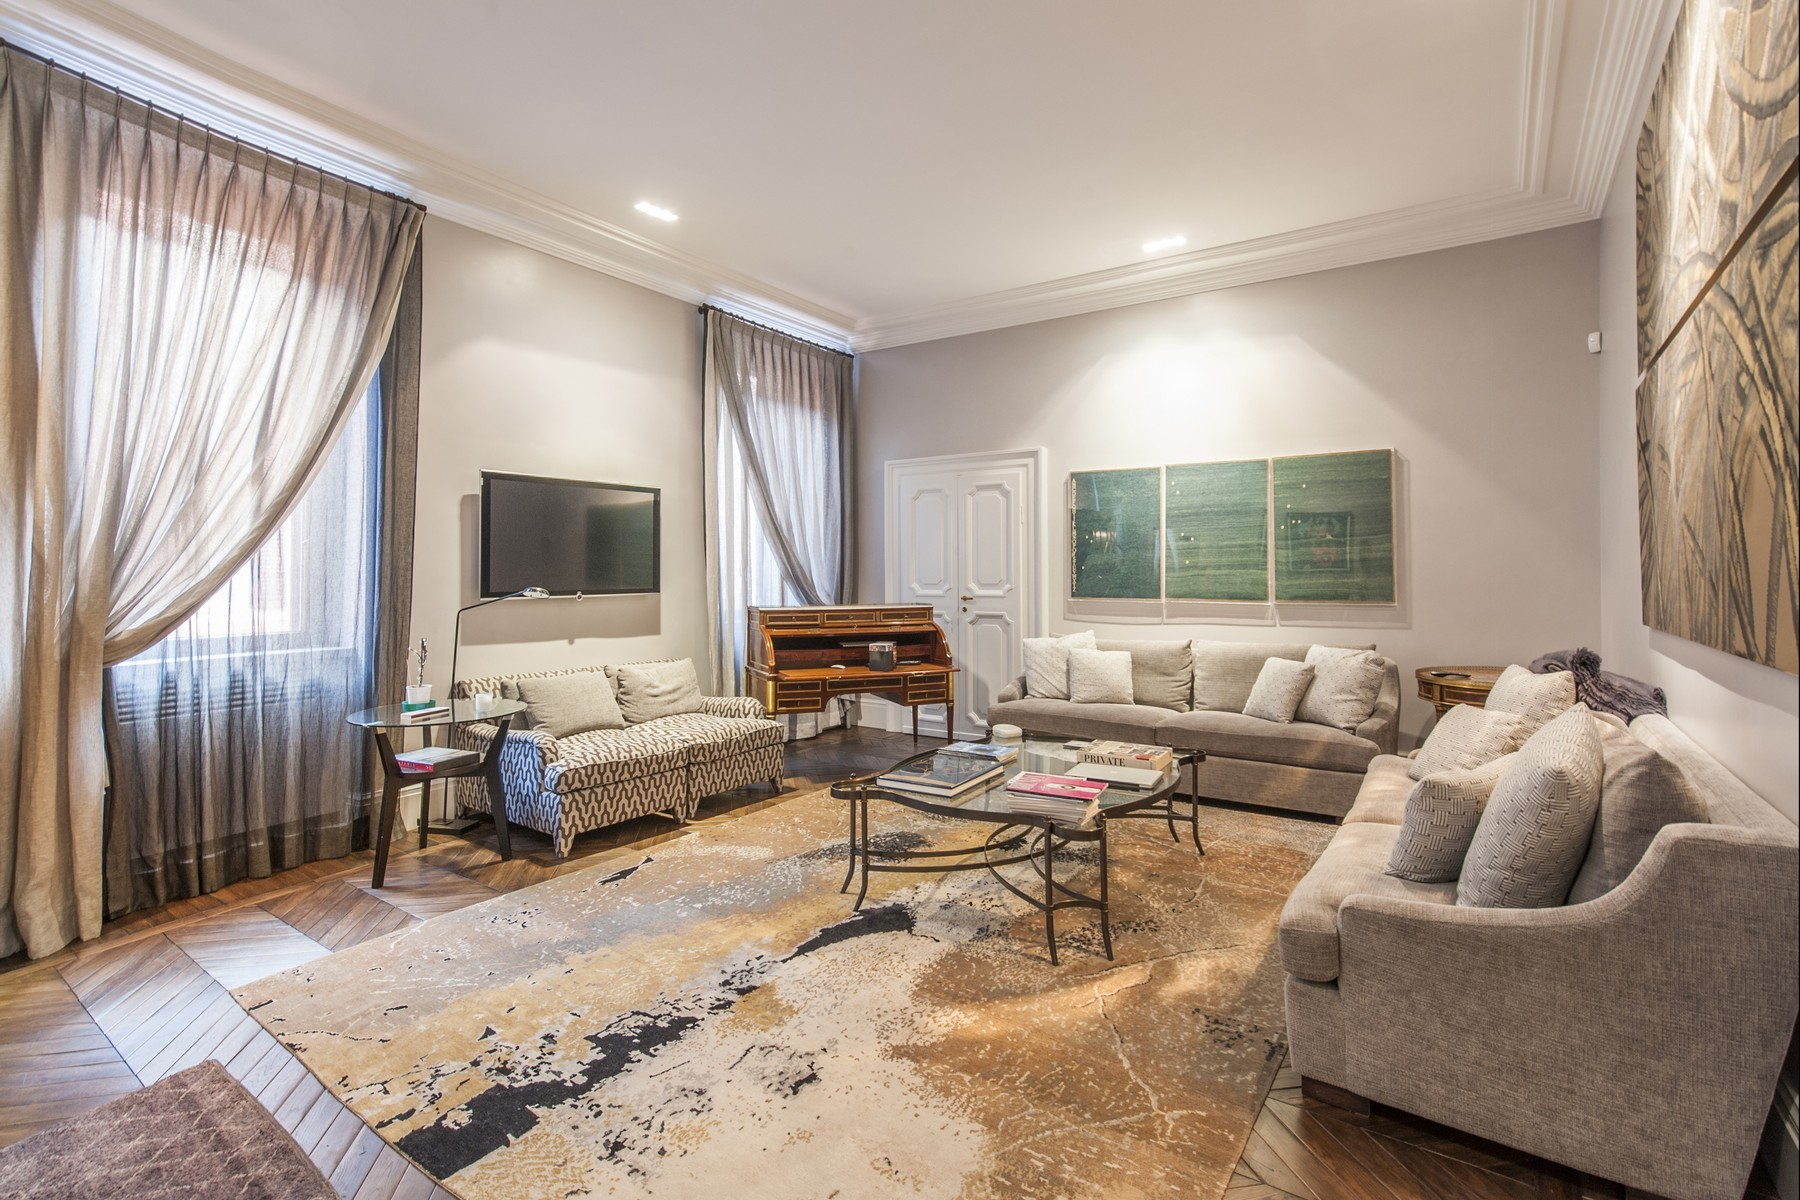 Квартира для того Продажа на Designer apartment a short walk from Via Condotti Via della Fontanella Borghese Rome, Рим, 00186 Италия